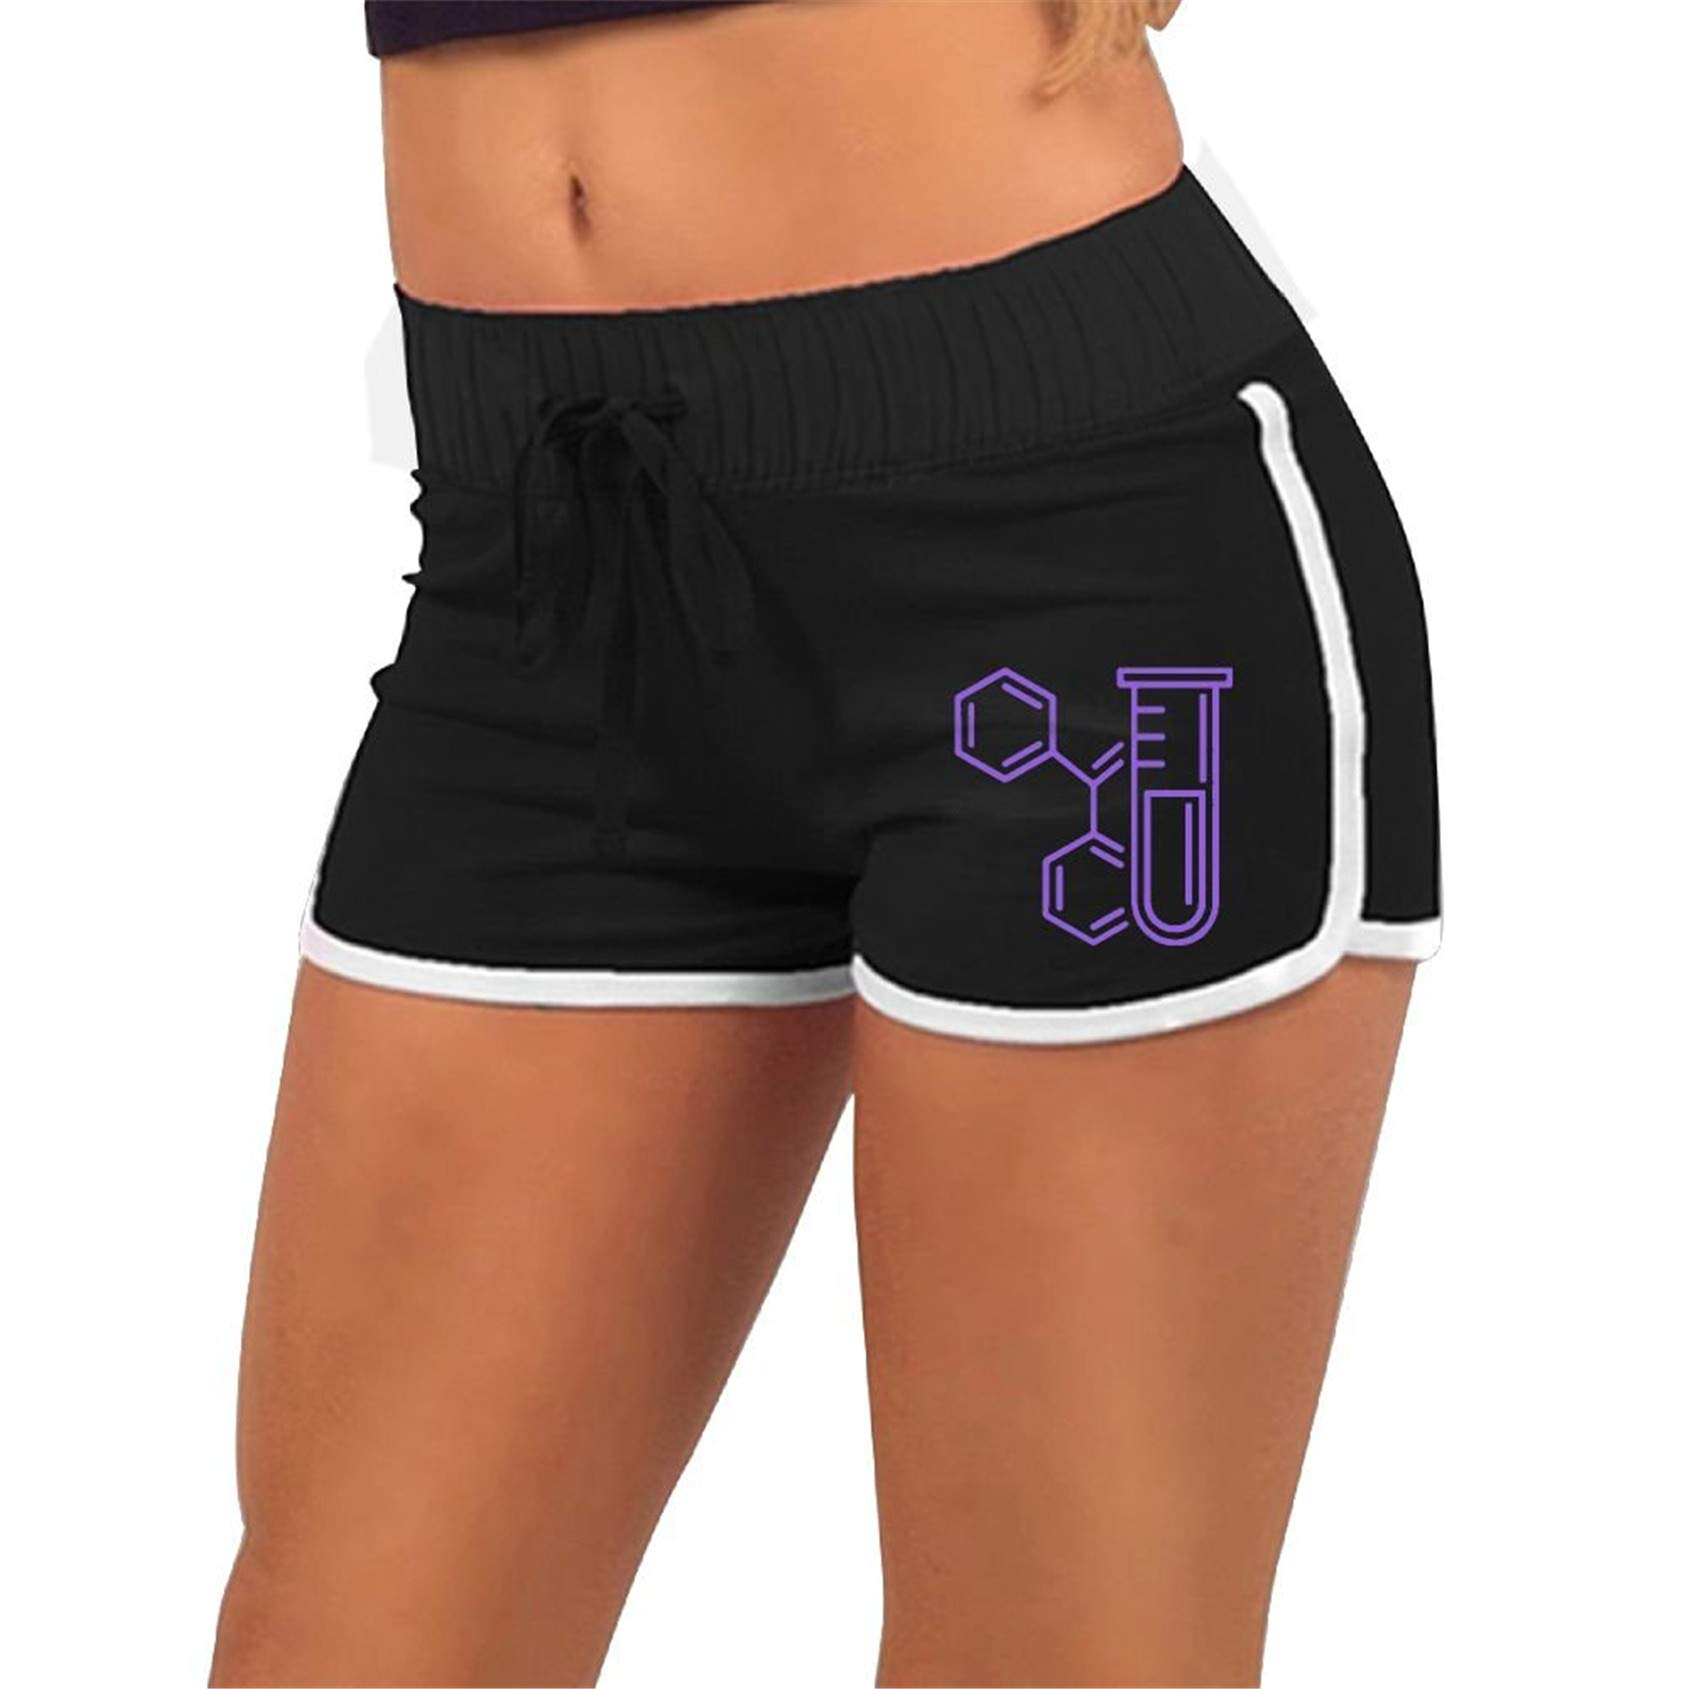 Chemistry Icon Glass Tube,Workout,Running Active Shorts Pants with,Athletic Elastic Waist Womens Sports Shorts